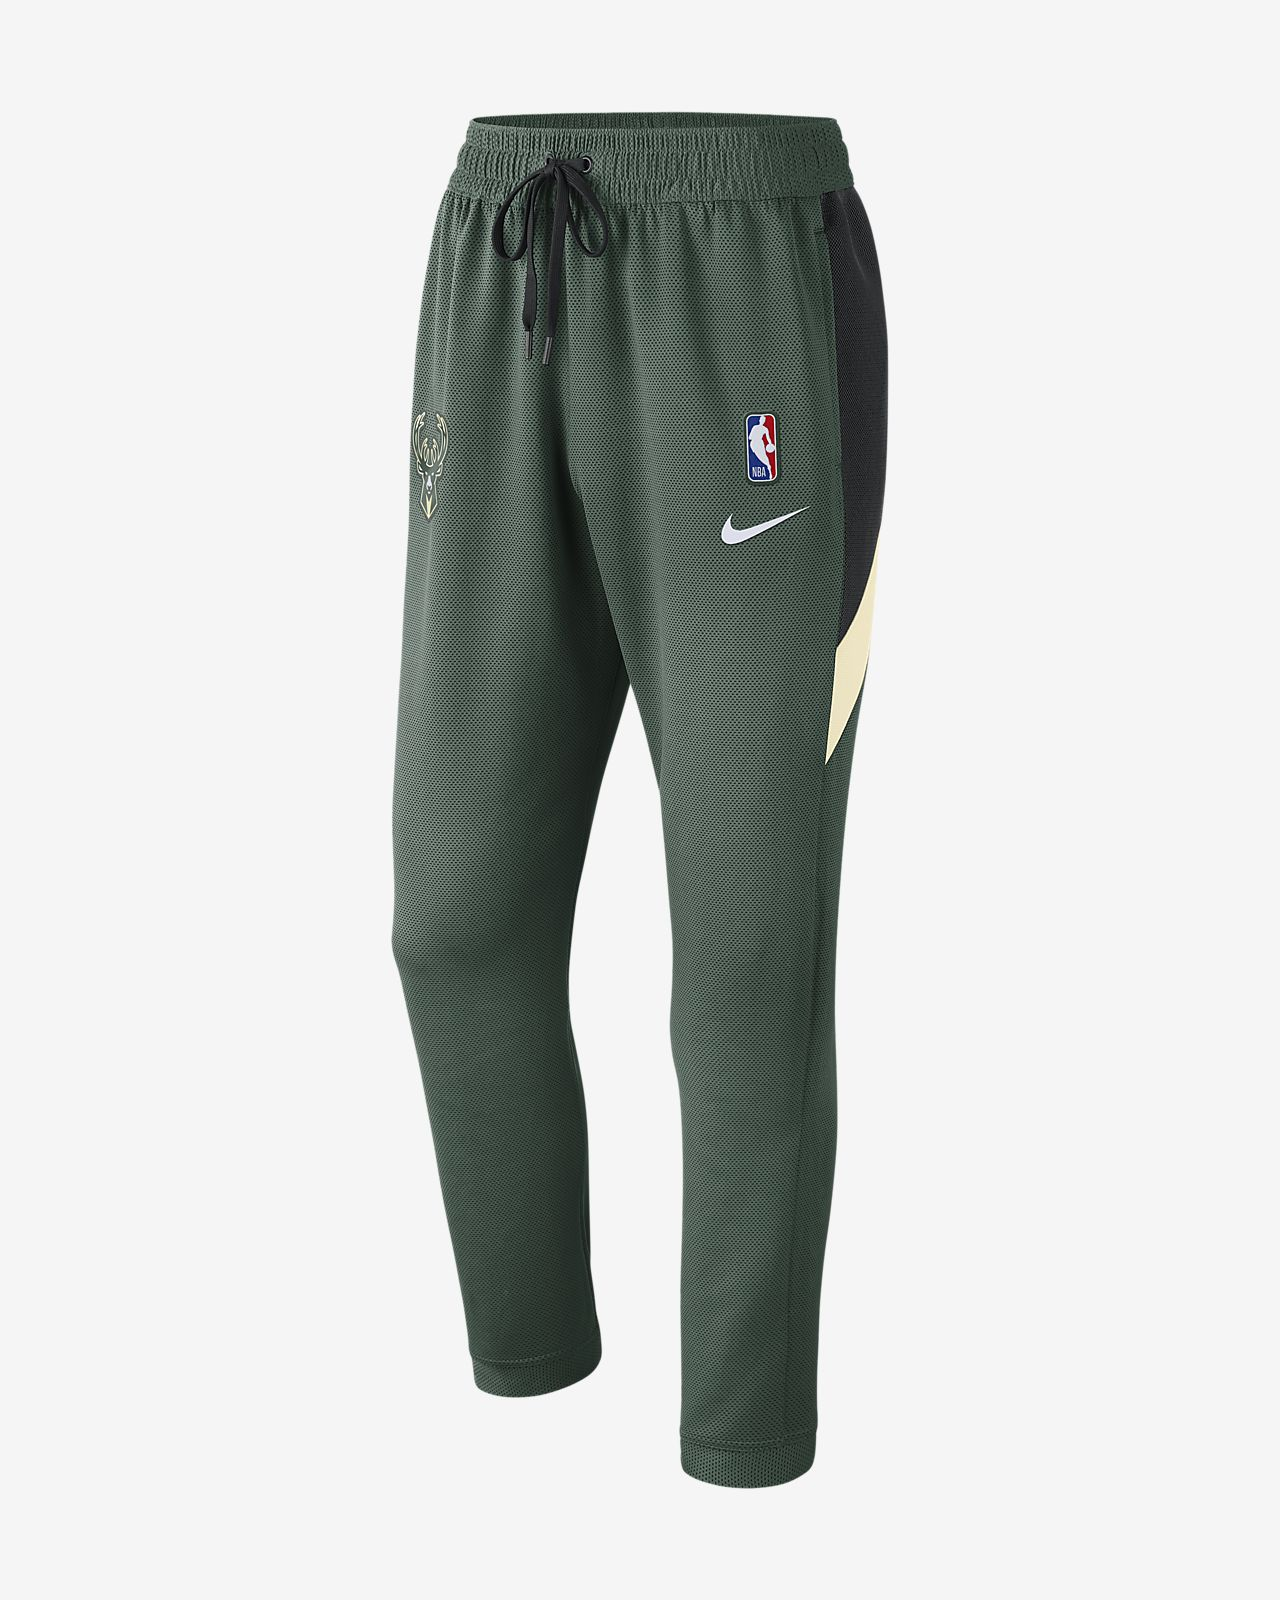 Milwaukee Bucks Nike Therma Flex Showtime Men's NBA Trousers